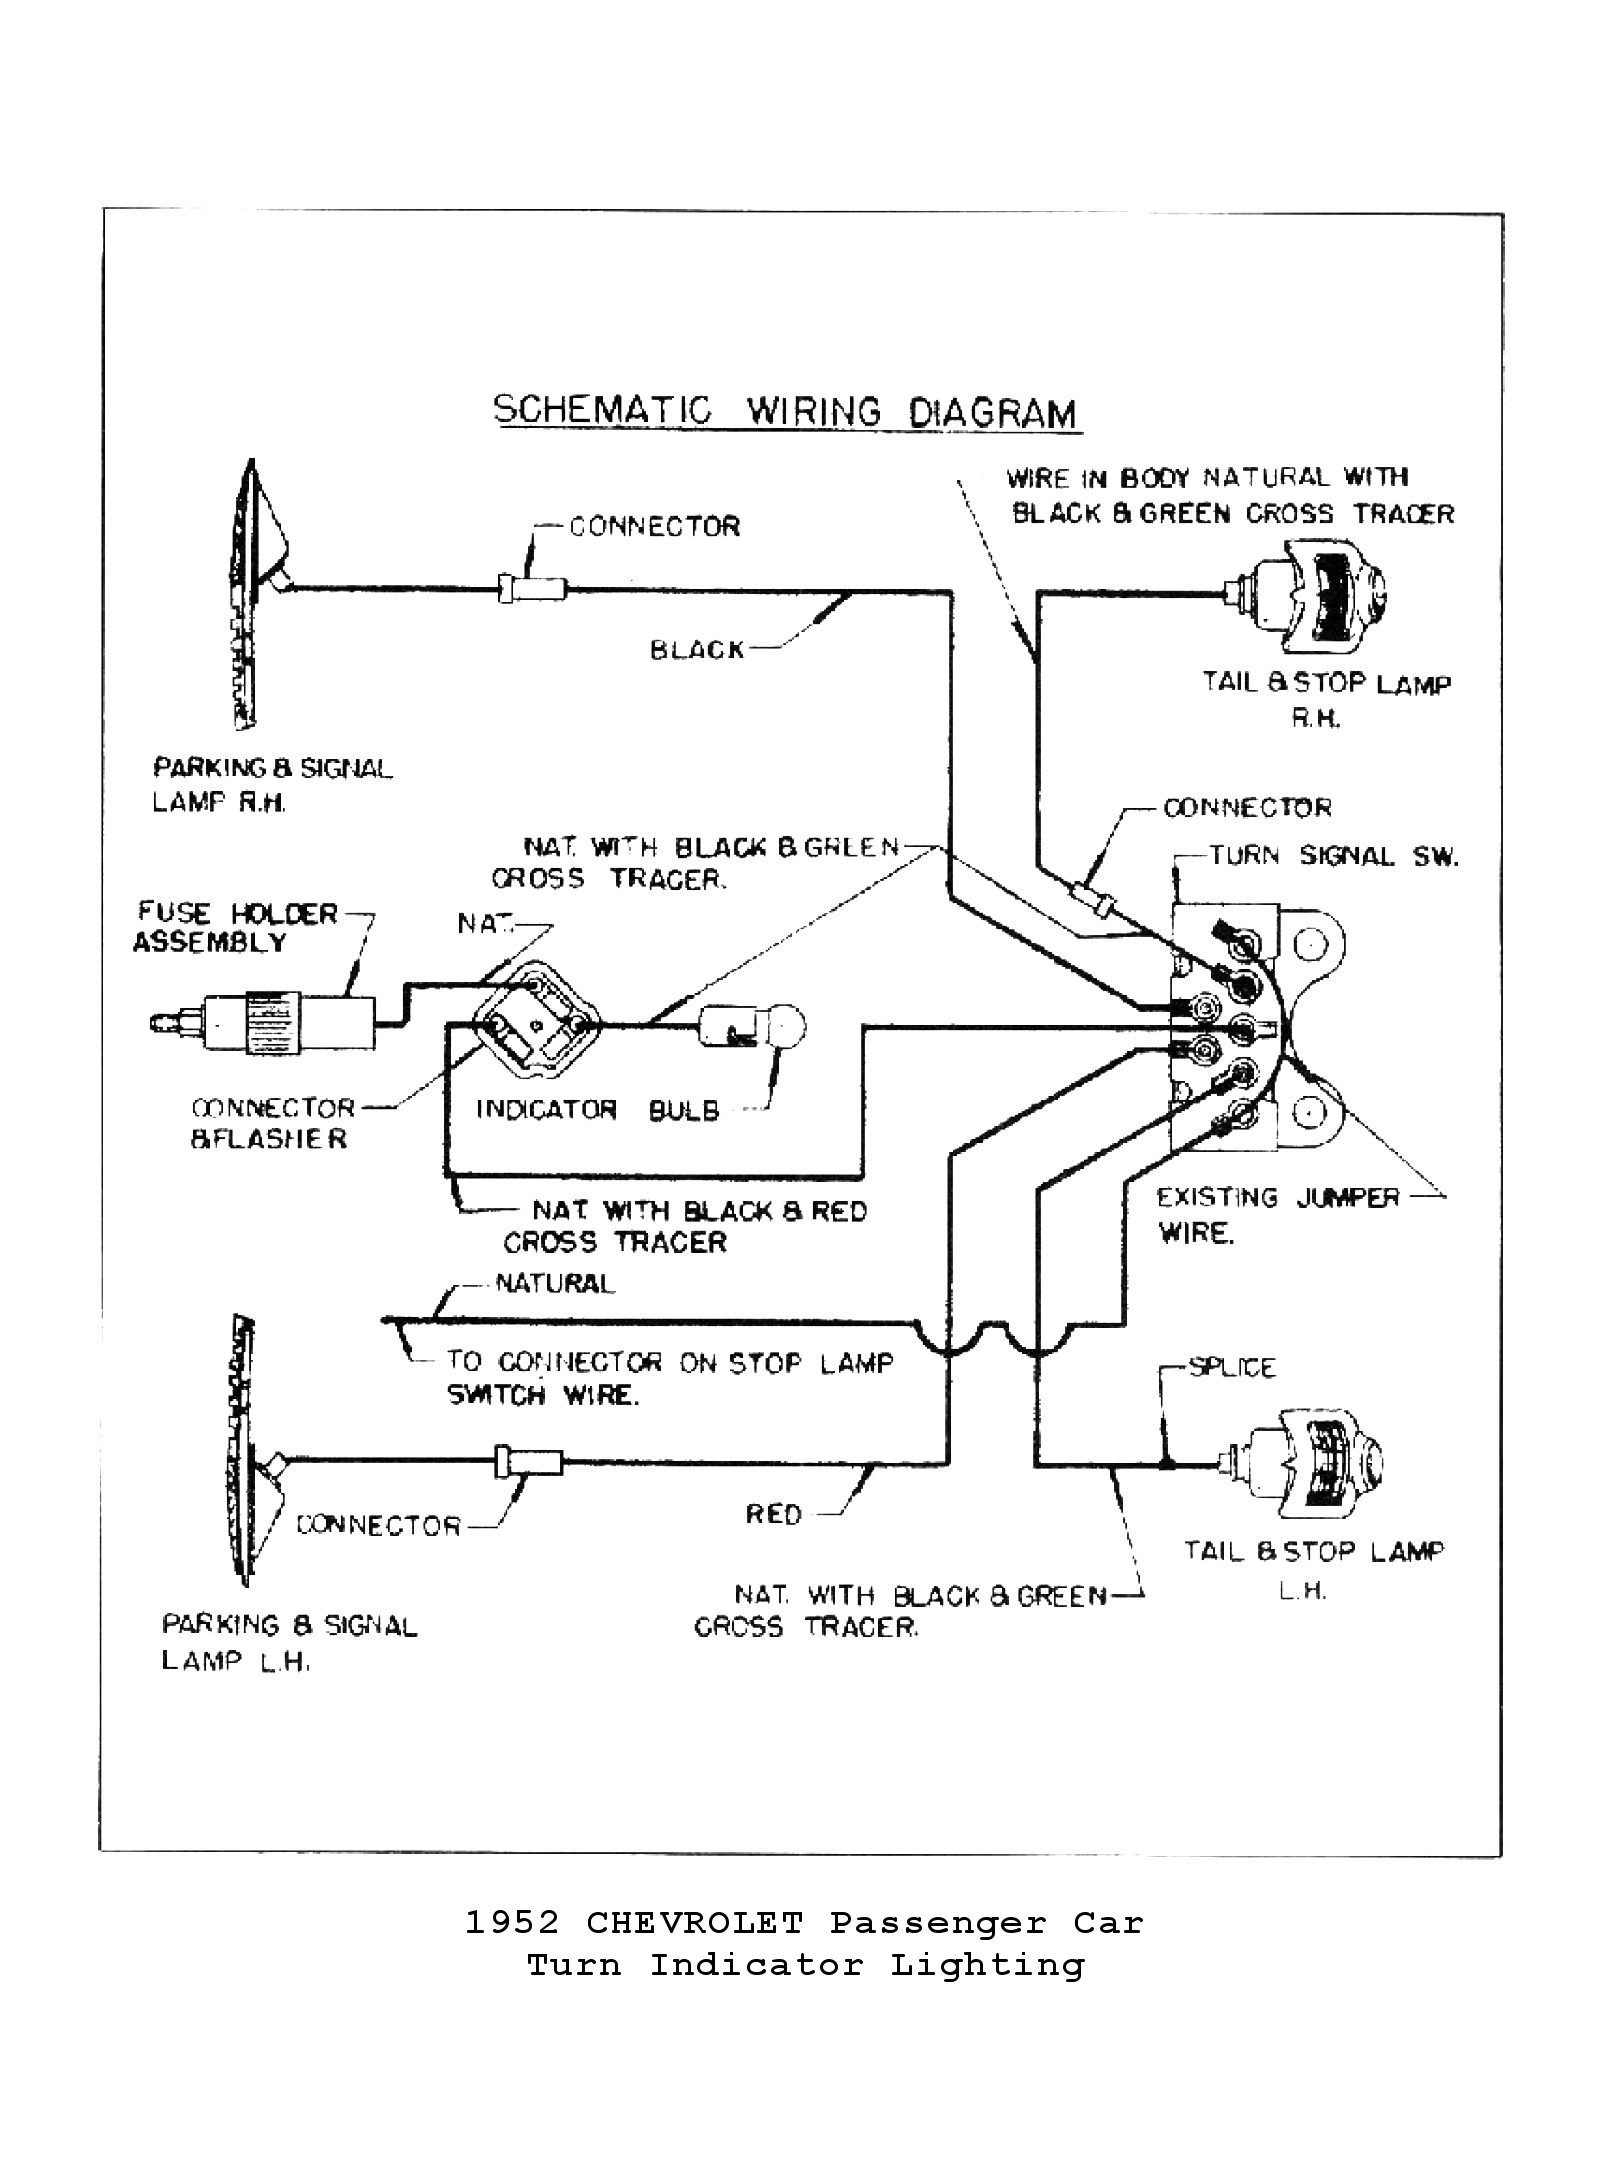 Jumper Cable Connection Diagram Chevy Wiring Diagrams Of Jumper Cable Connection Diagram